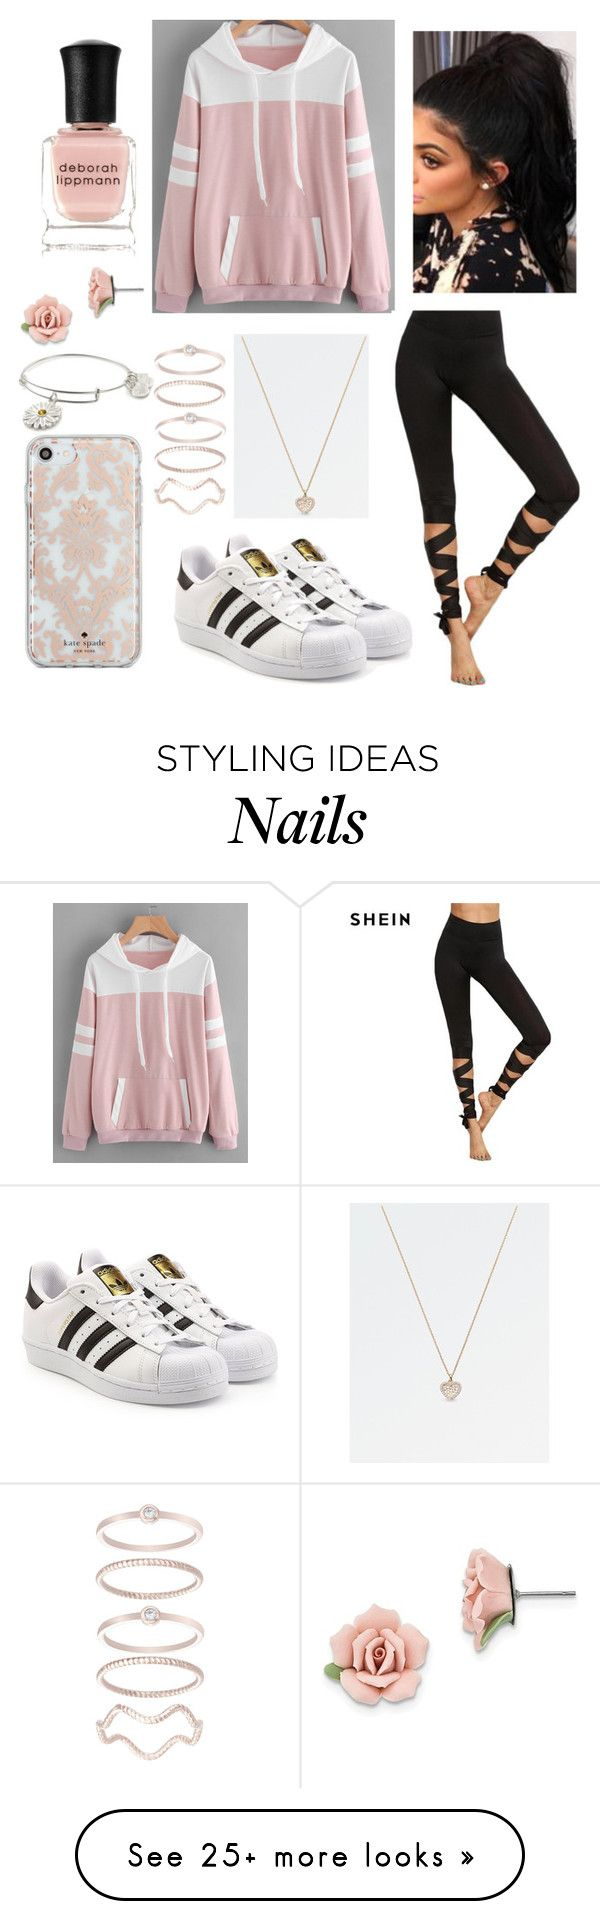 """Pastel Sweaters contest #3"" by mina-lisha on Polyvore featuring adidas Originals, Kate Spade, Mia Sarine, Alex and Ani, 1928 and Deborah Lippmann"